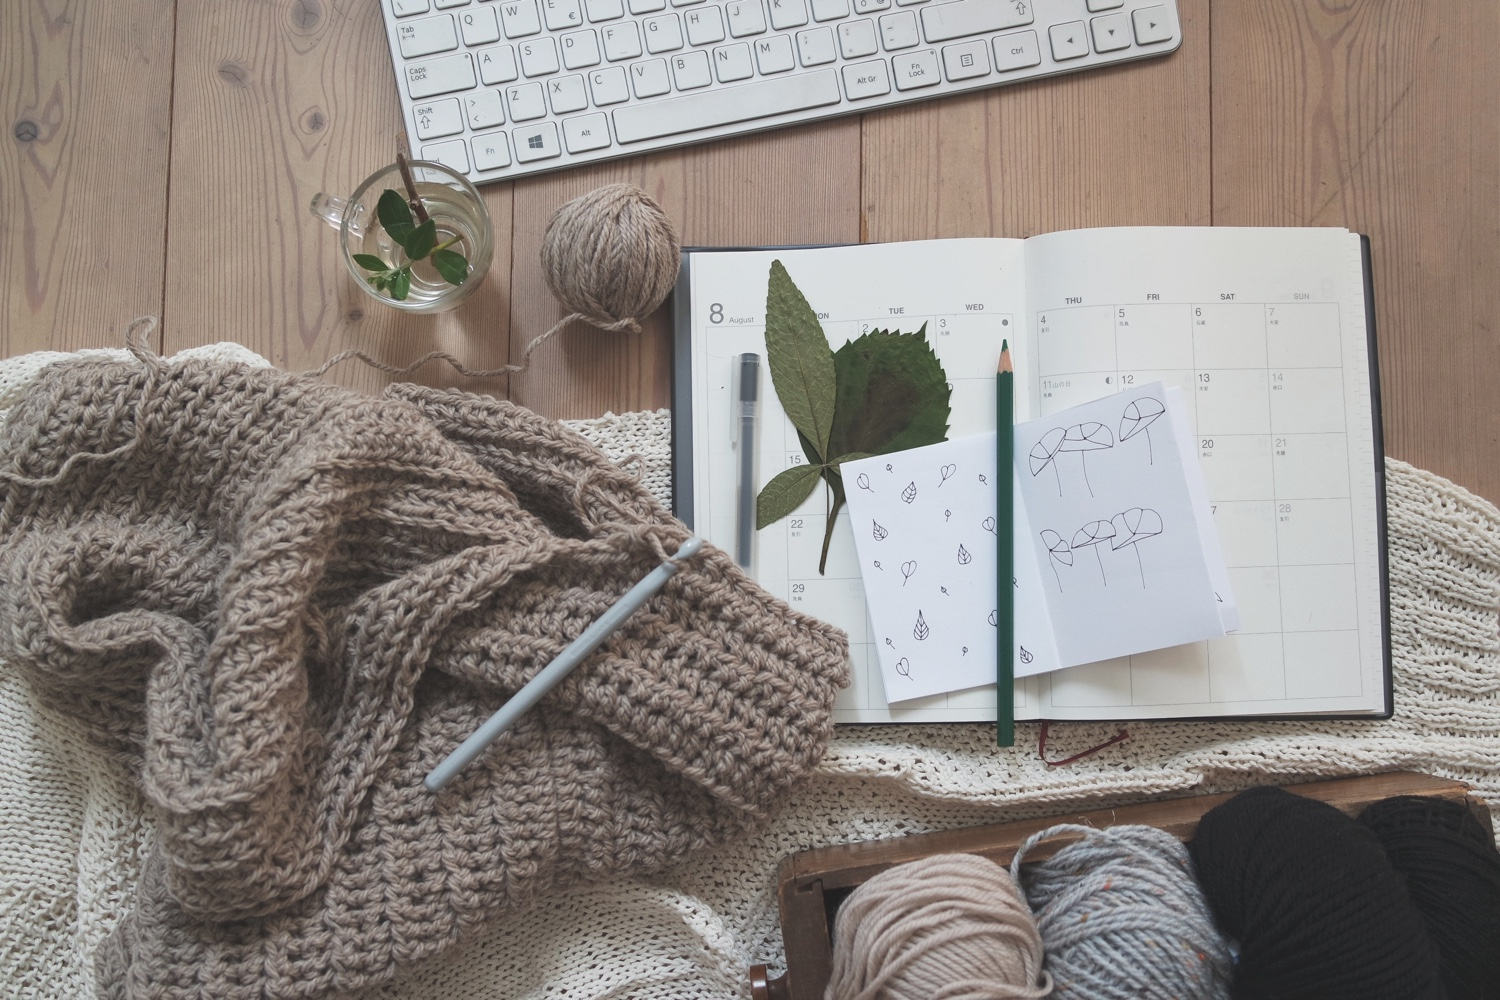 The perfect vegan guide to Hygge, the Scandinavian lifestyle of coziness ! A list of Hygge ideas